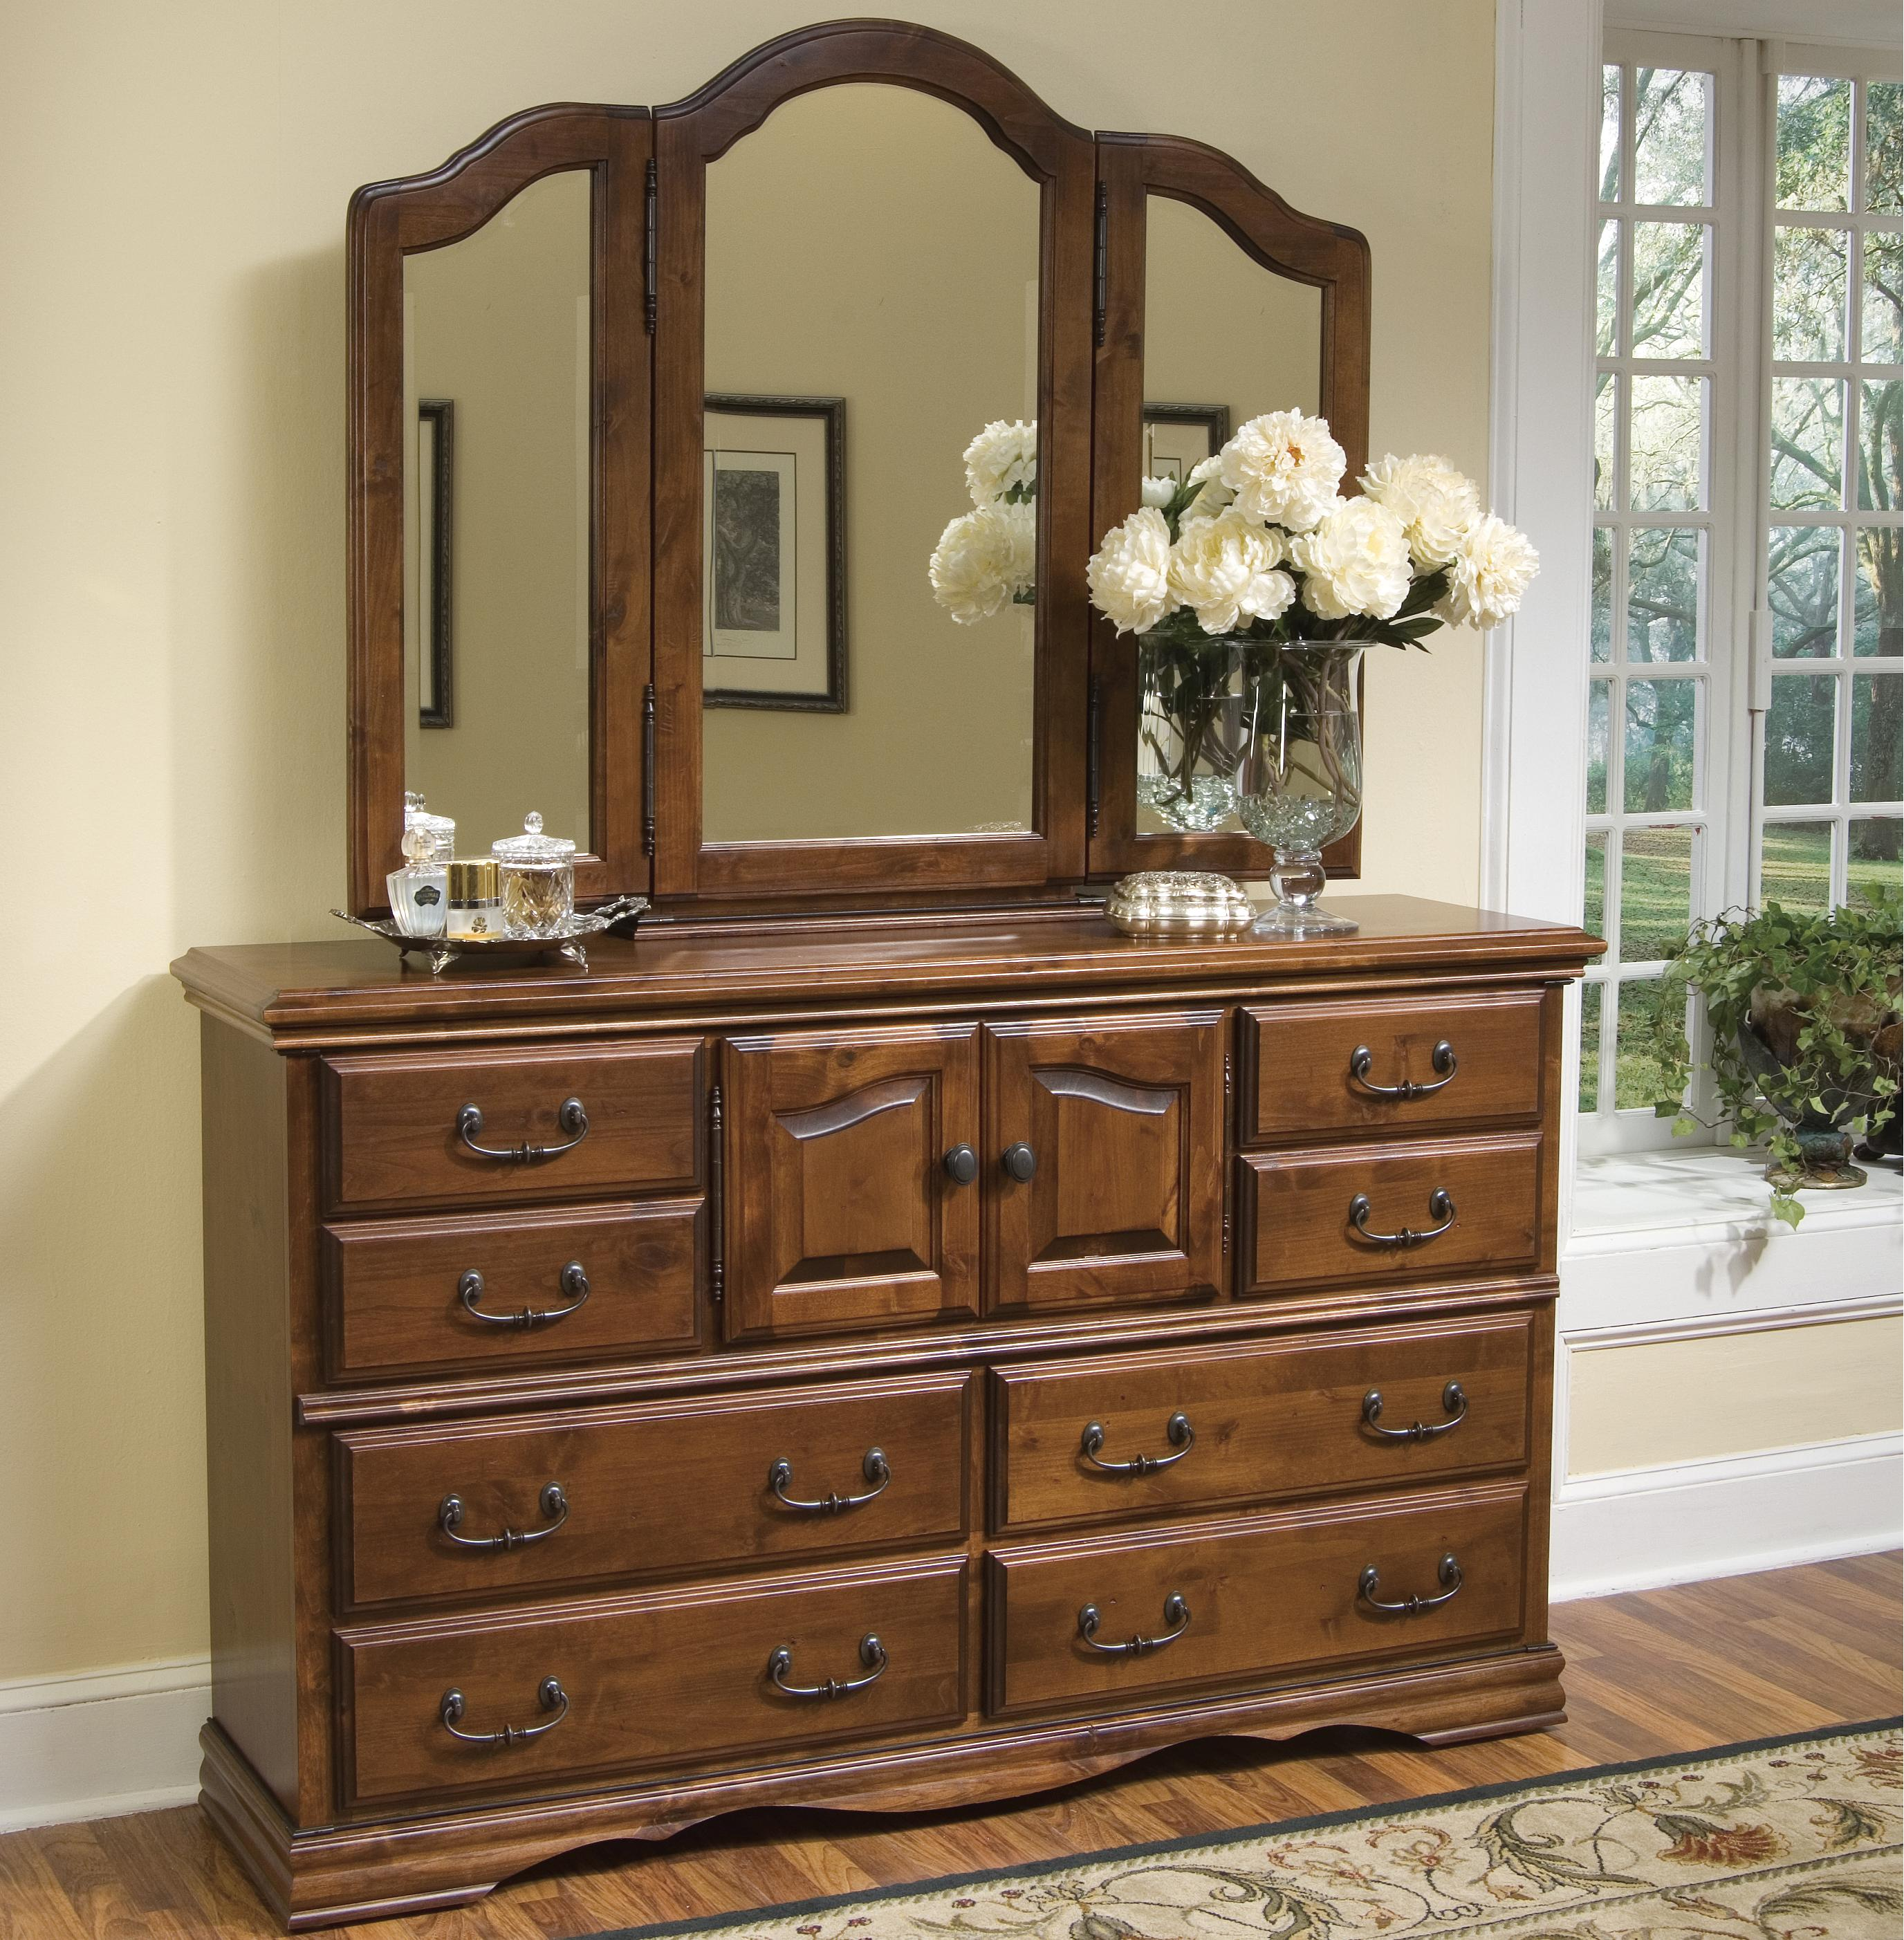 Furniture Traditions Alder Hill Dresser and Mirror Combo - Item Number: A2000+A3500